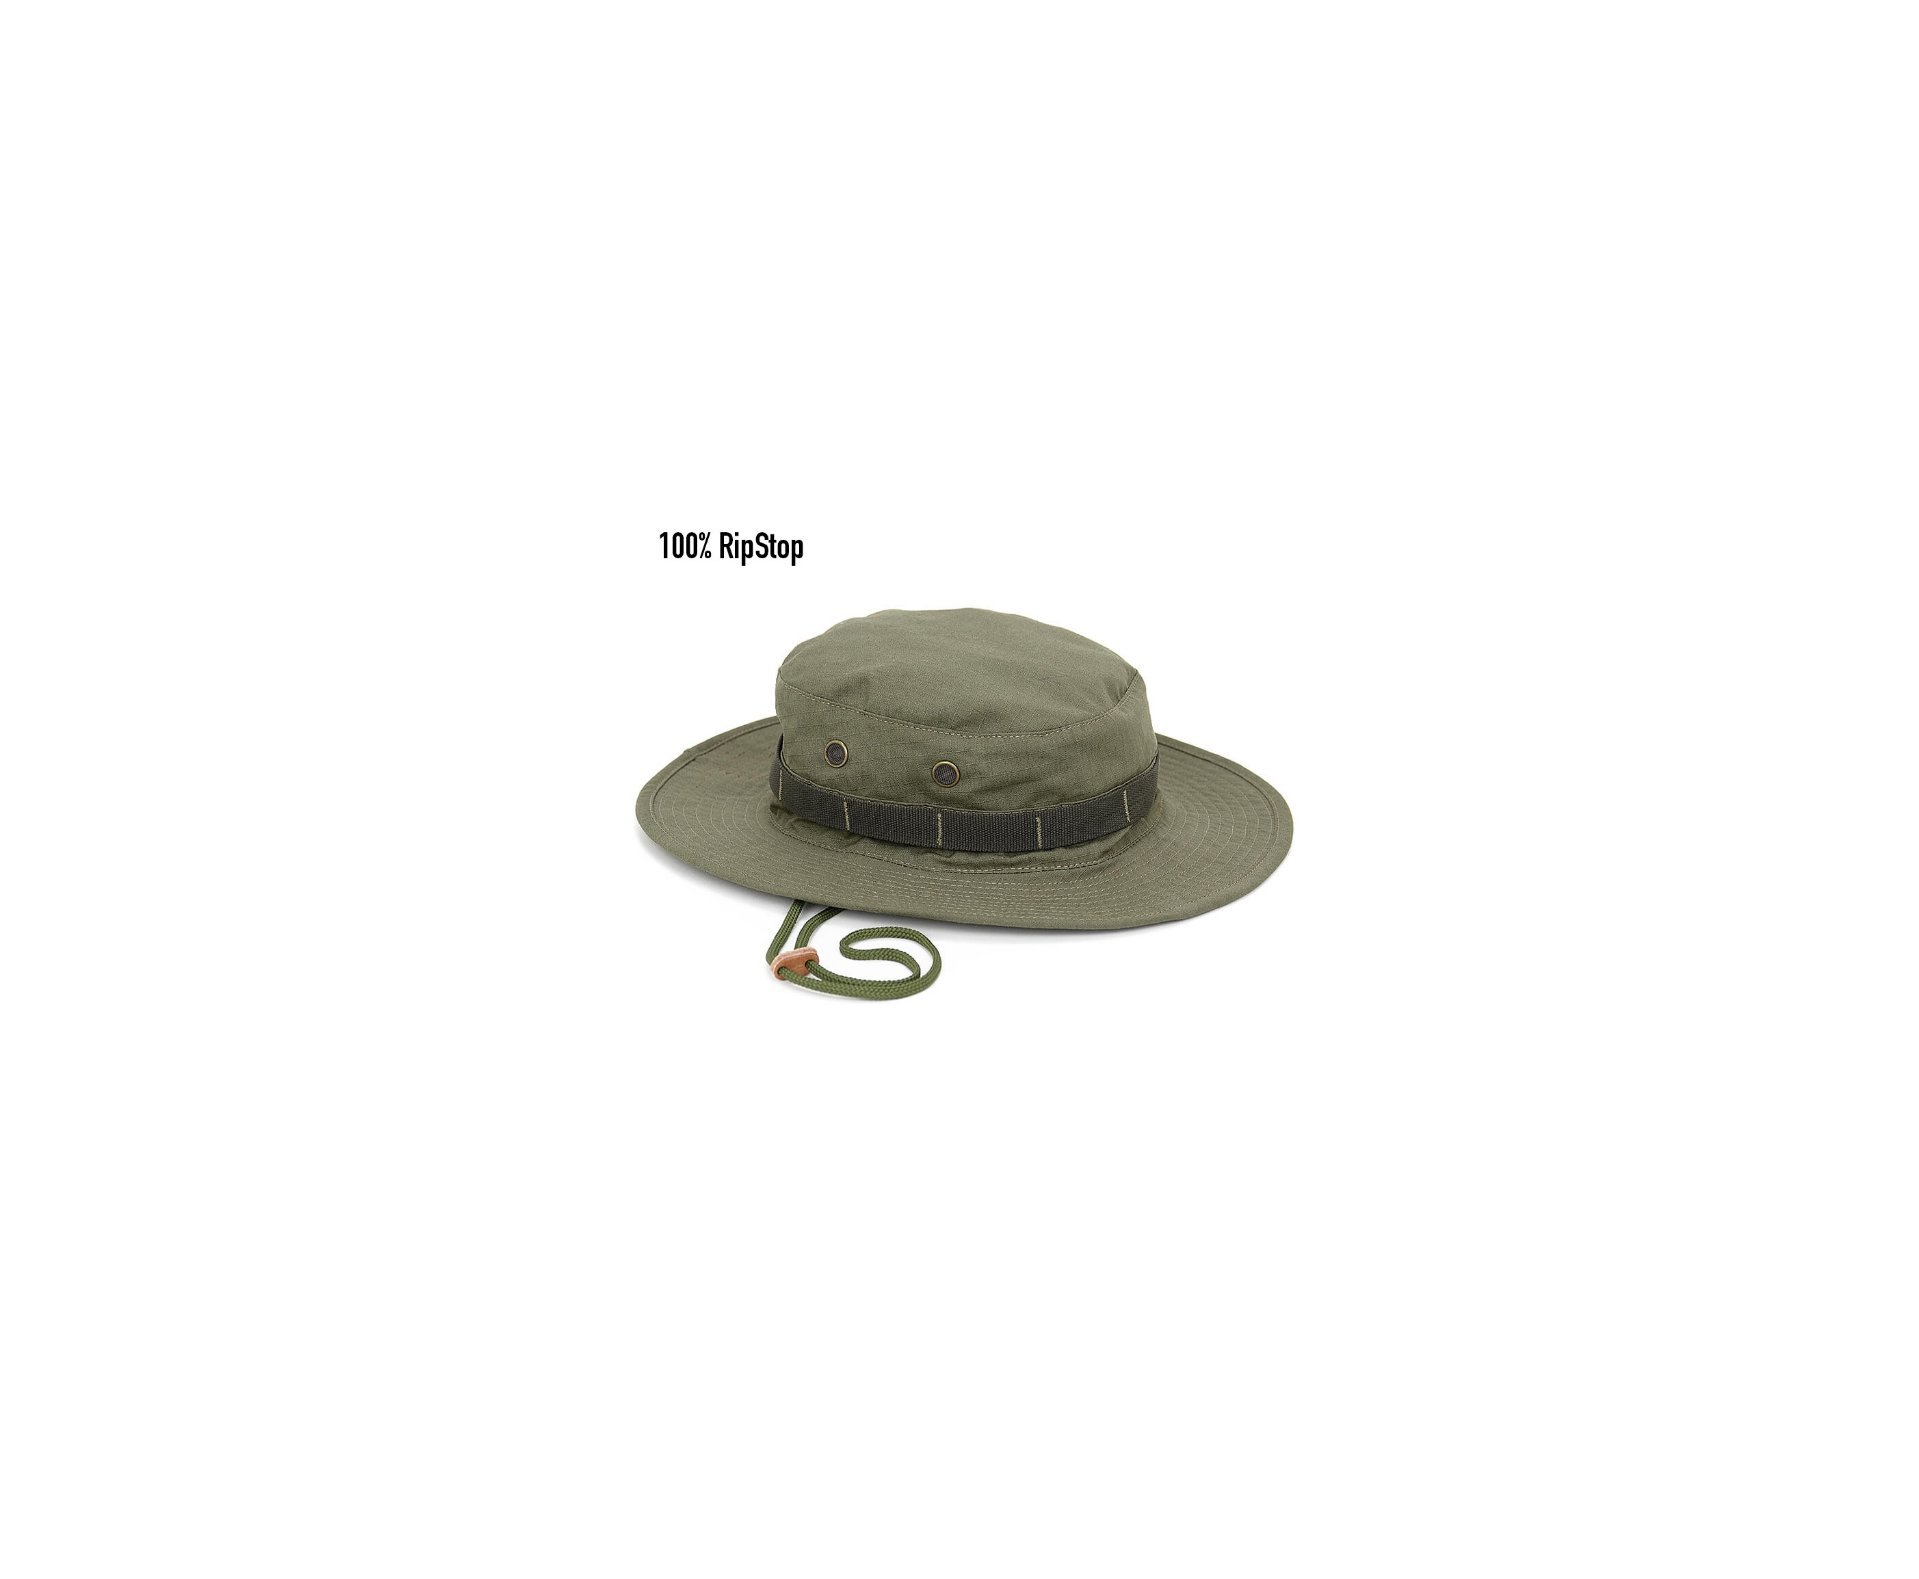 Chapeu Boonie Hat Em Ripstop - Olive Drab - Forhonor - M